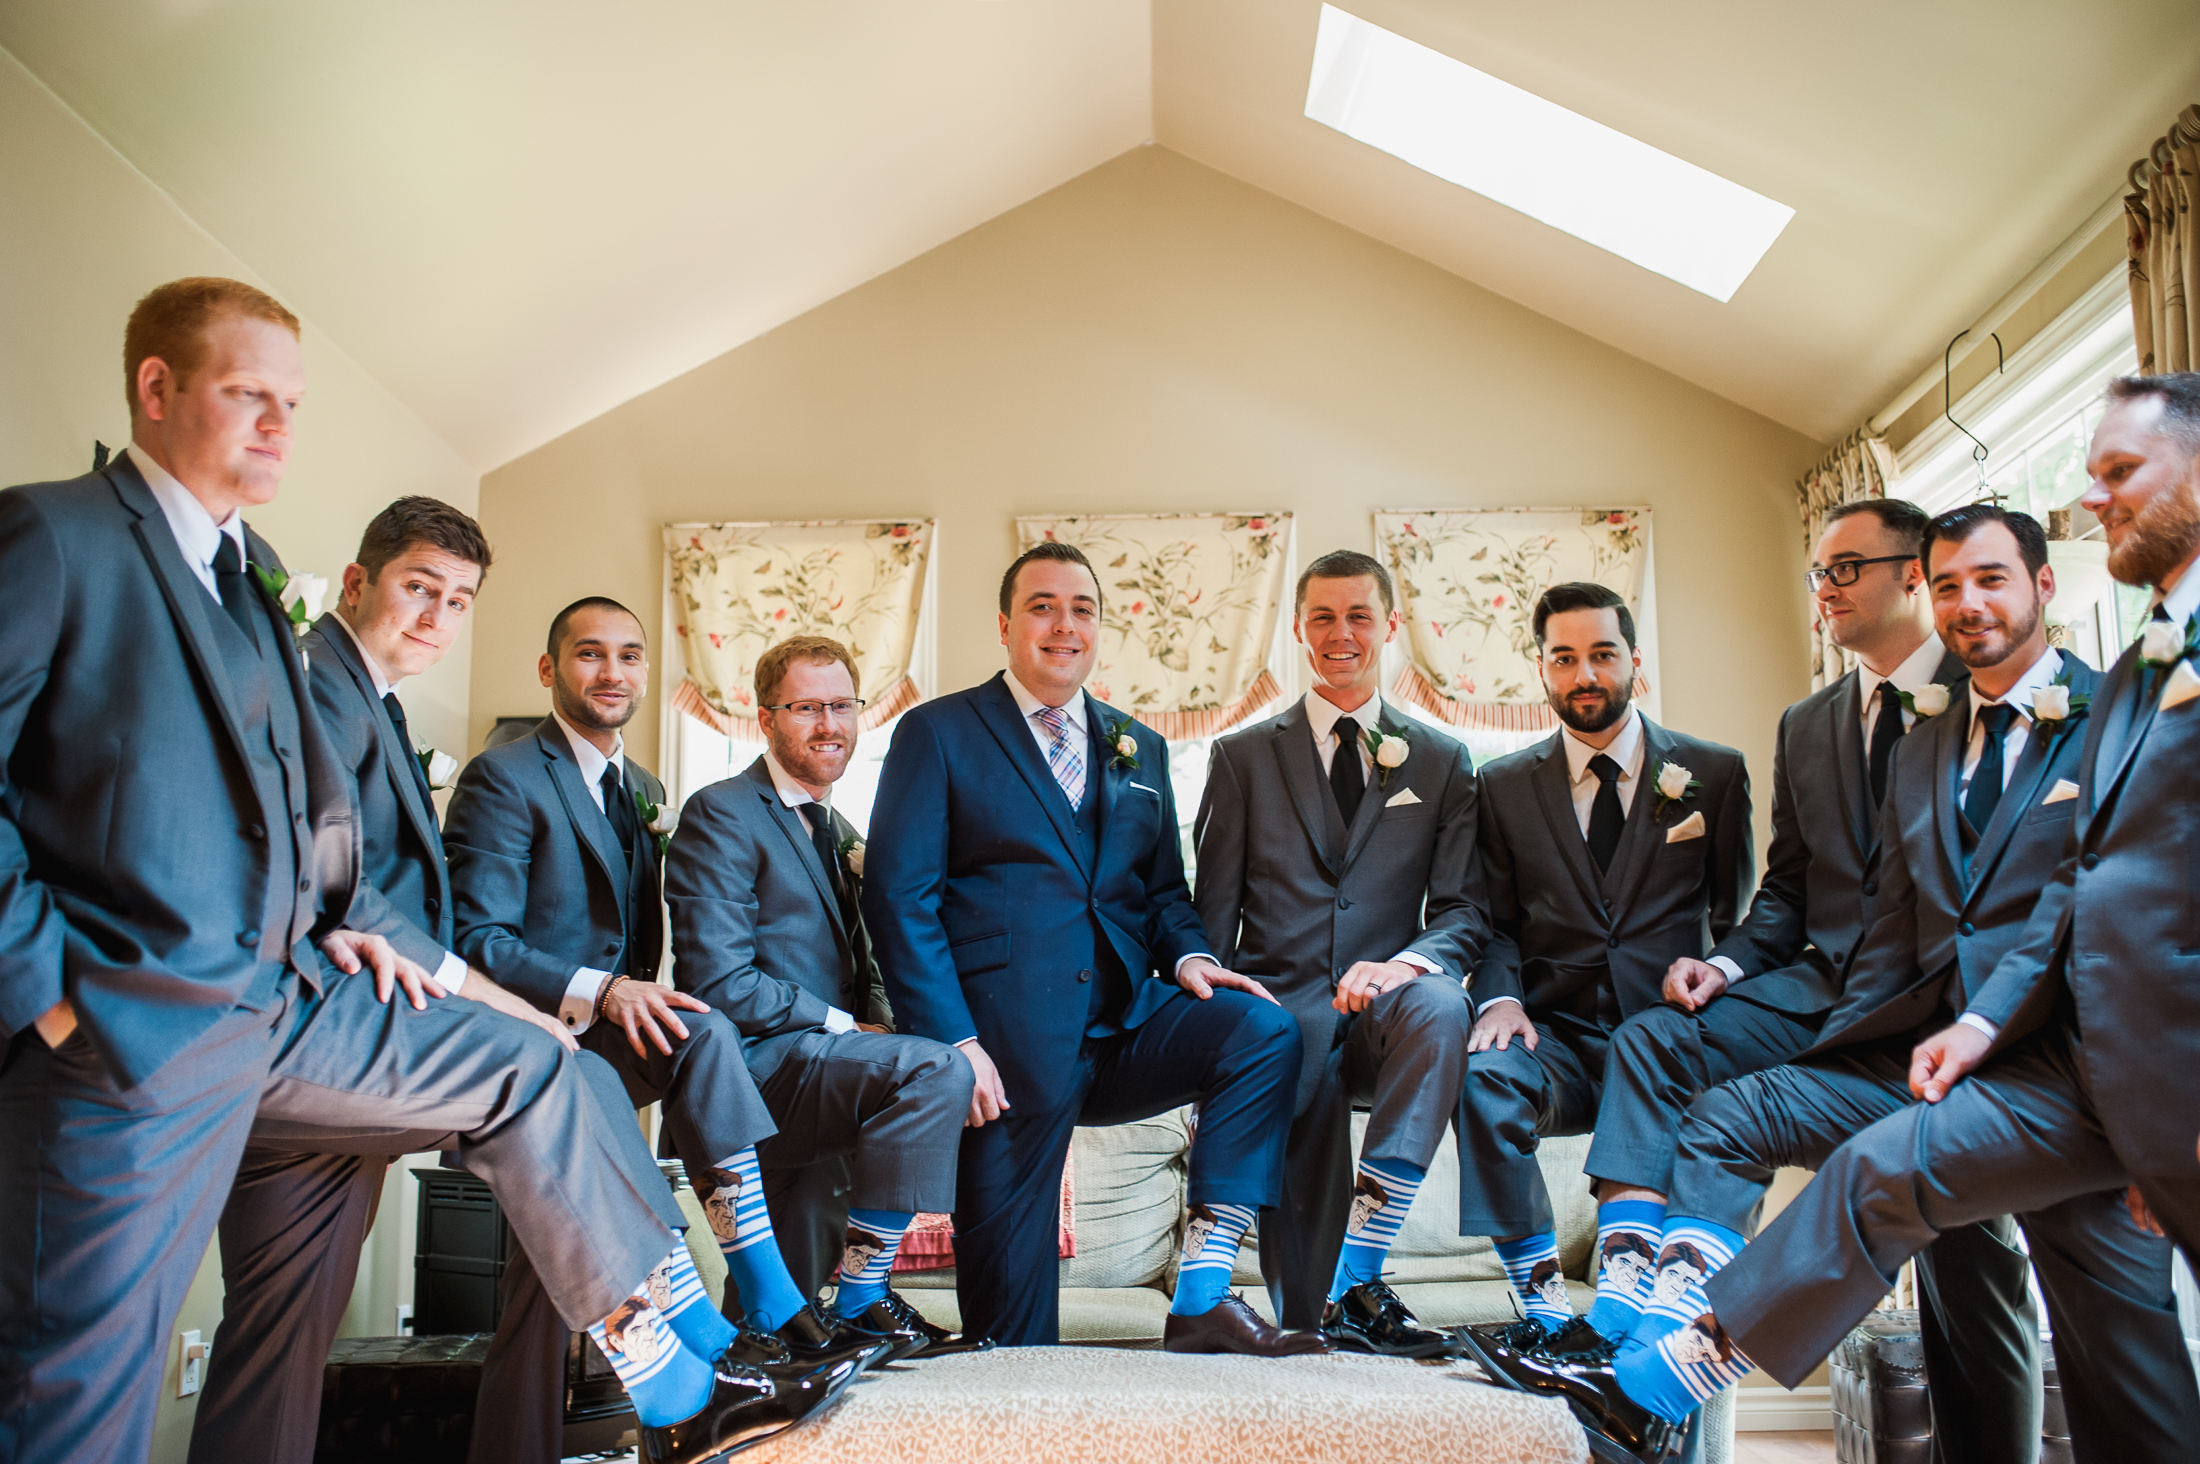 pickering_lakehouse_wedding_durham_region79